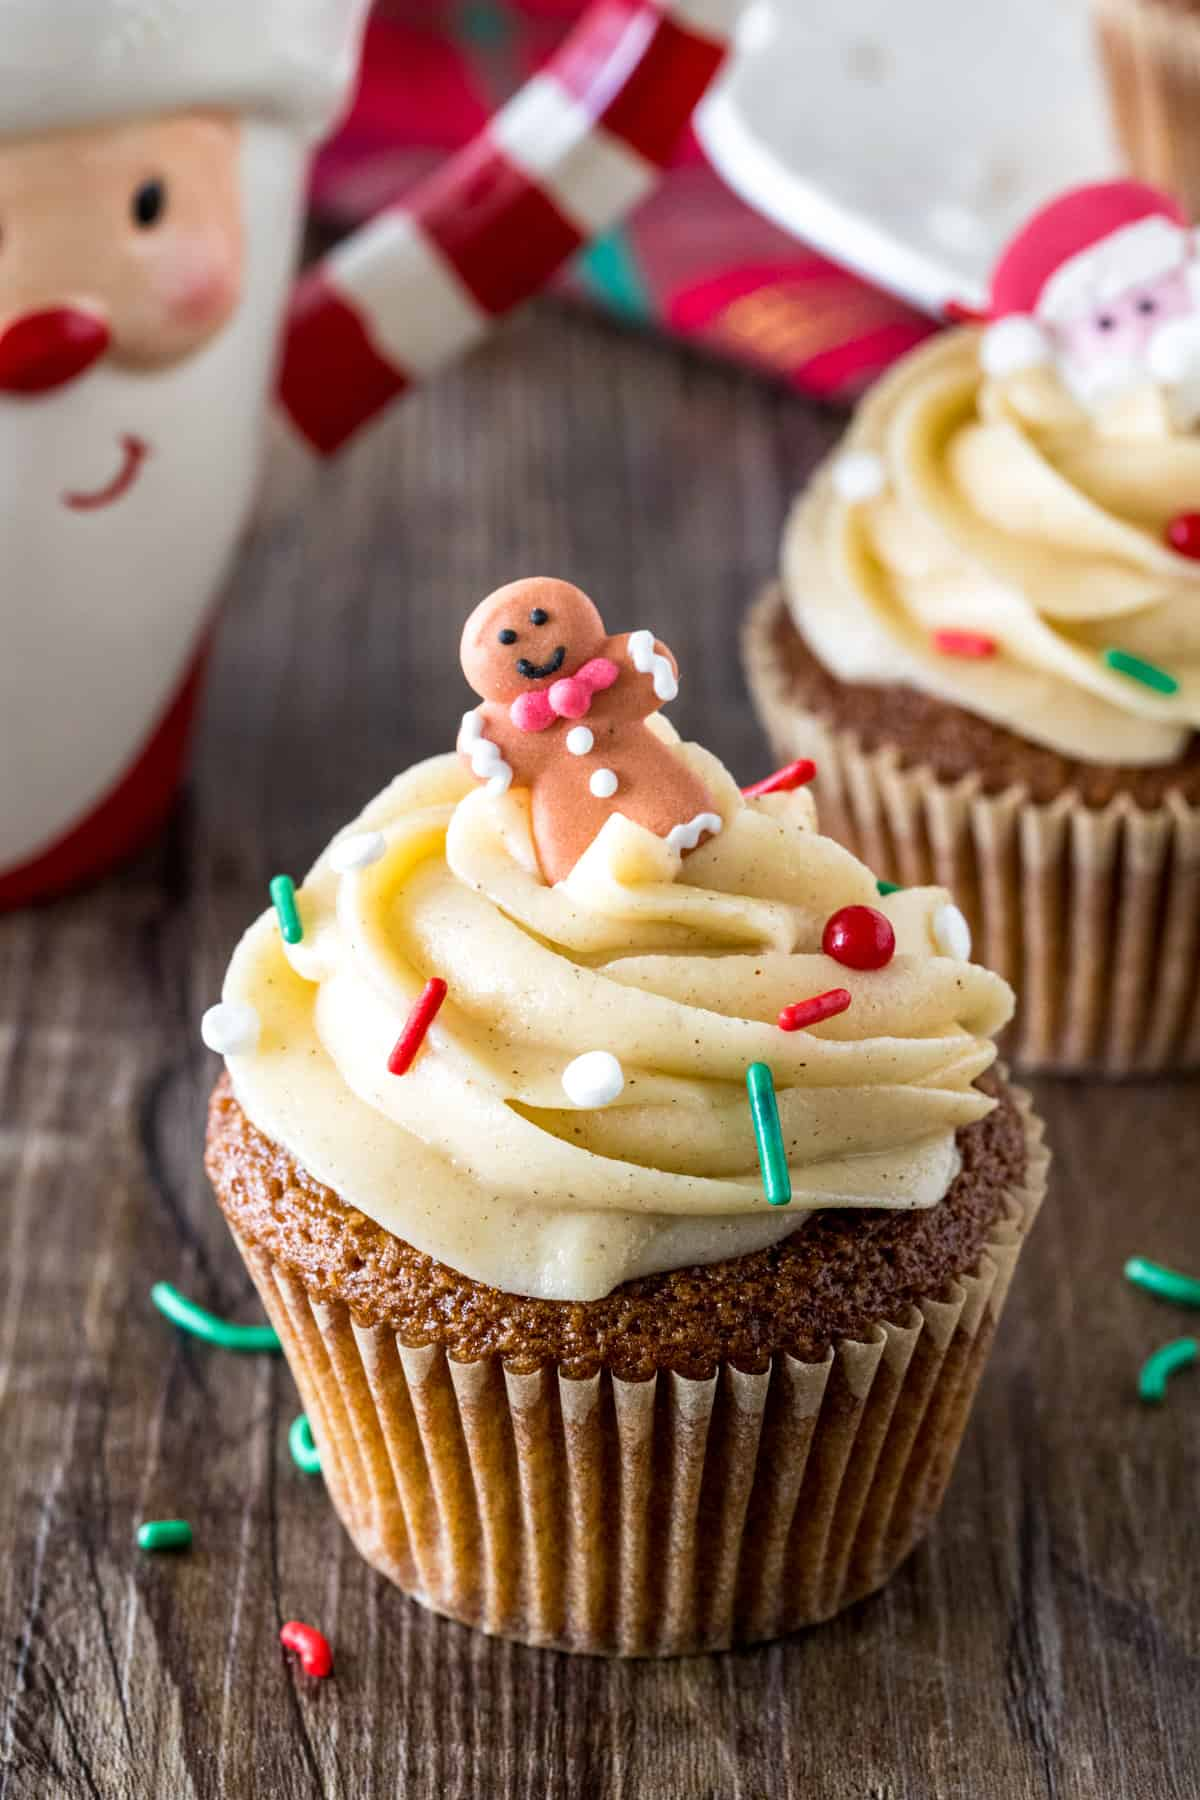 Gingerbread cupcakes made with cake mix and topped with cinnamon cream cheese frosting